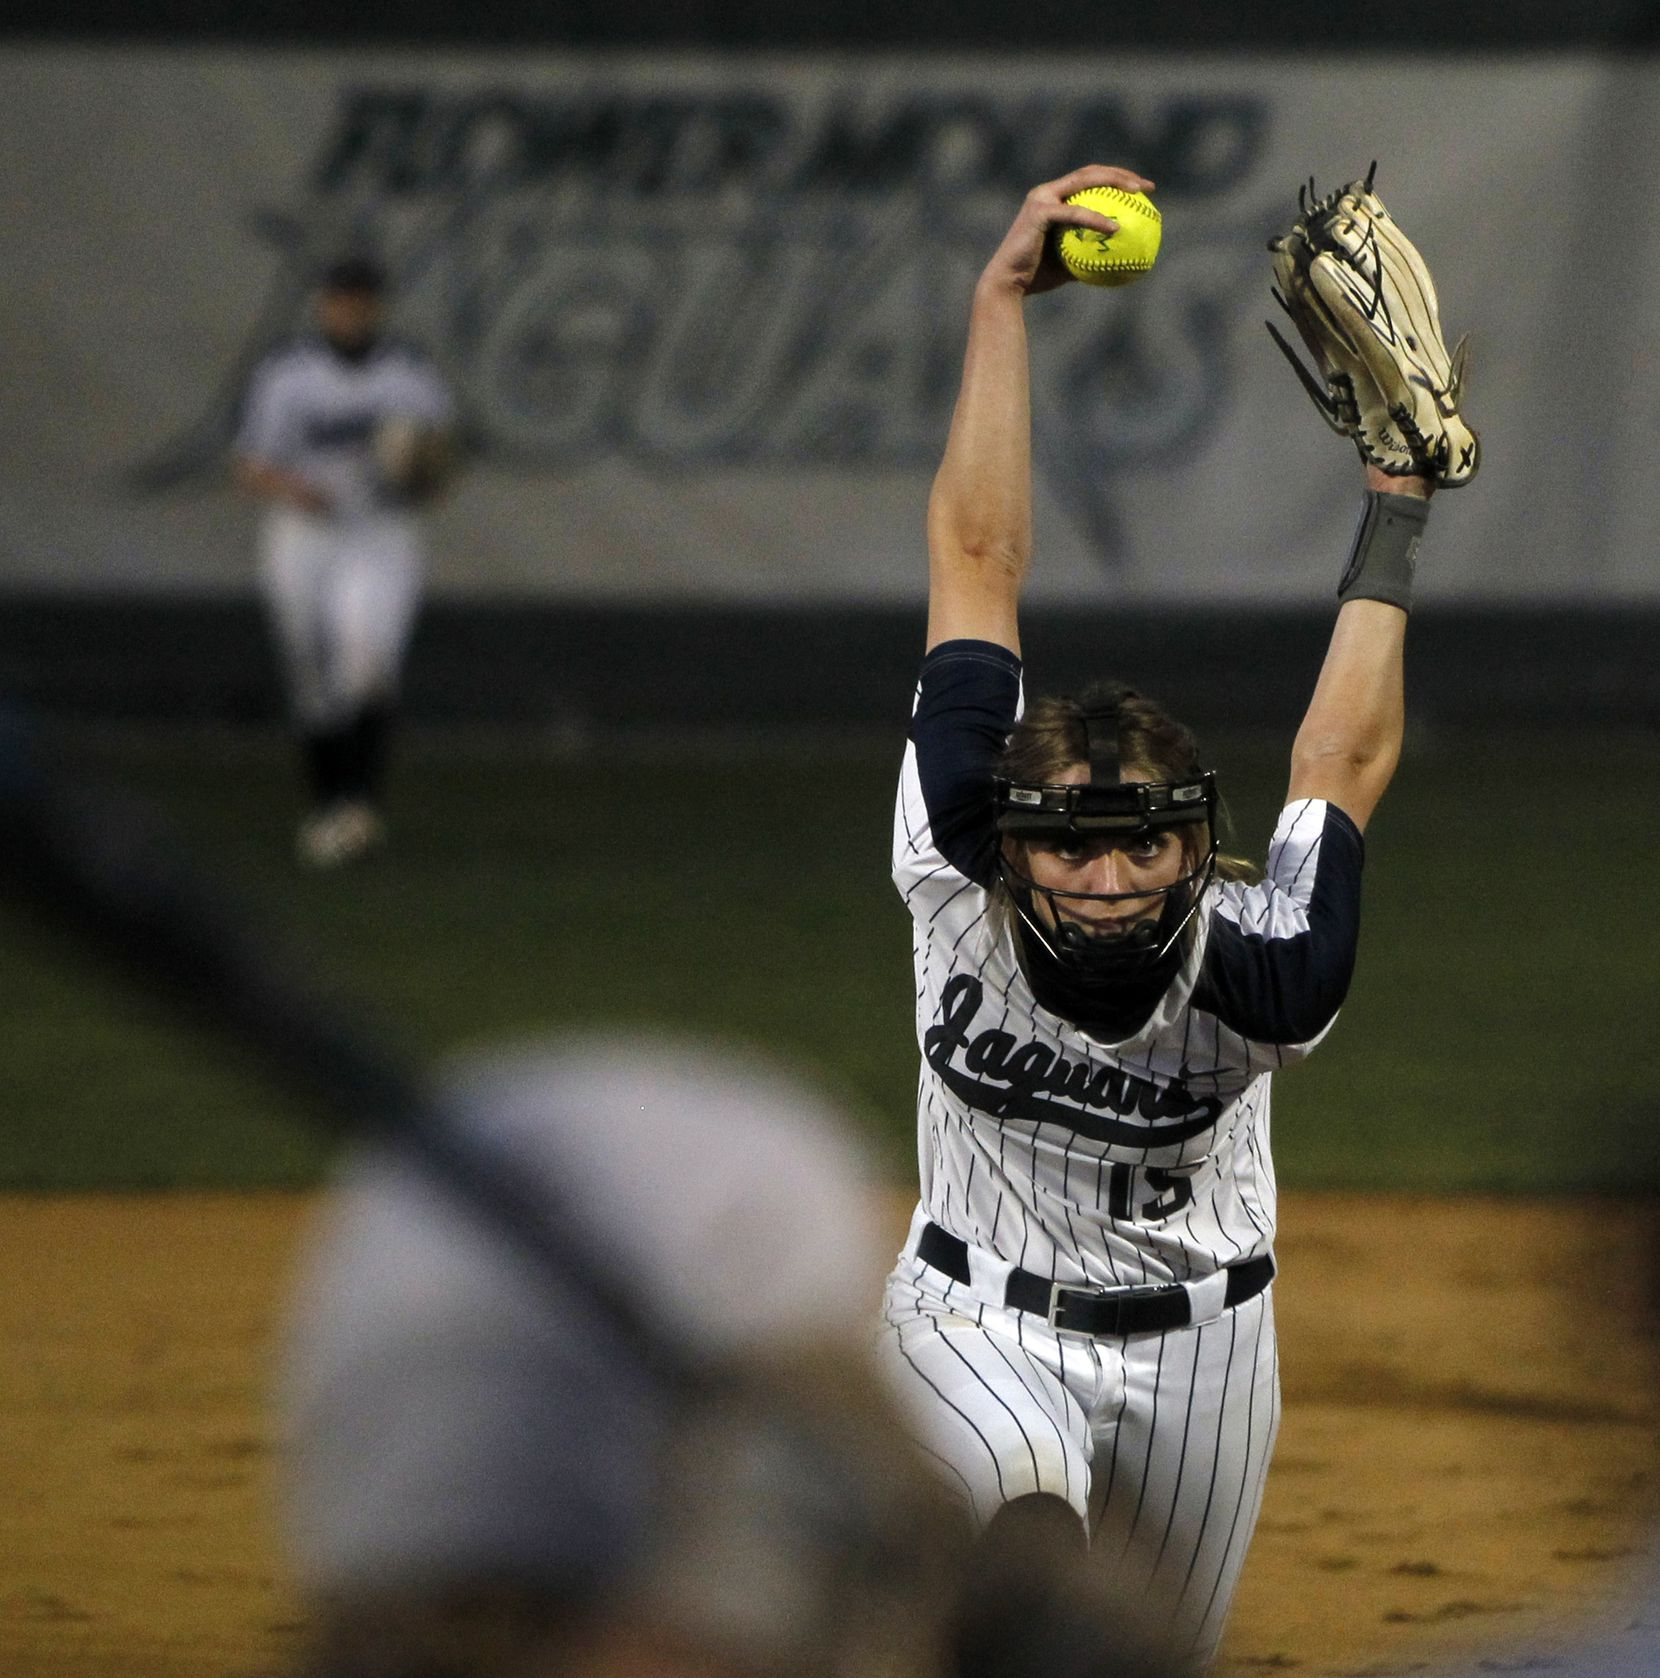 Flower Mound sophomore pitcher Landrie Harris (15) goes through her wind-up before delivering a pitch to a Plano batter during the top of the 2nd inning of play. The two teams played their District 6-6A softball game at Flower Mound High School in Flower Mound on March 23, 2021. (Steve Hamm/ Special Contributor)